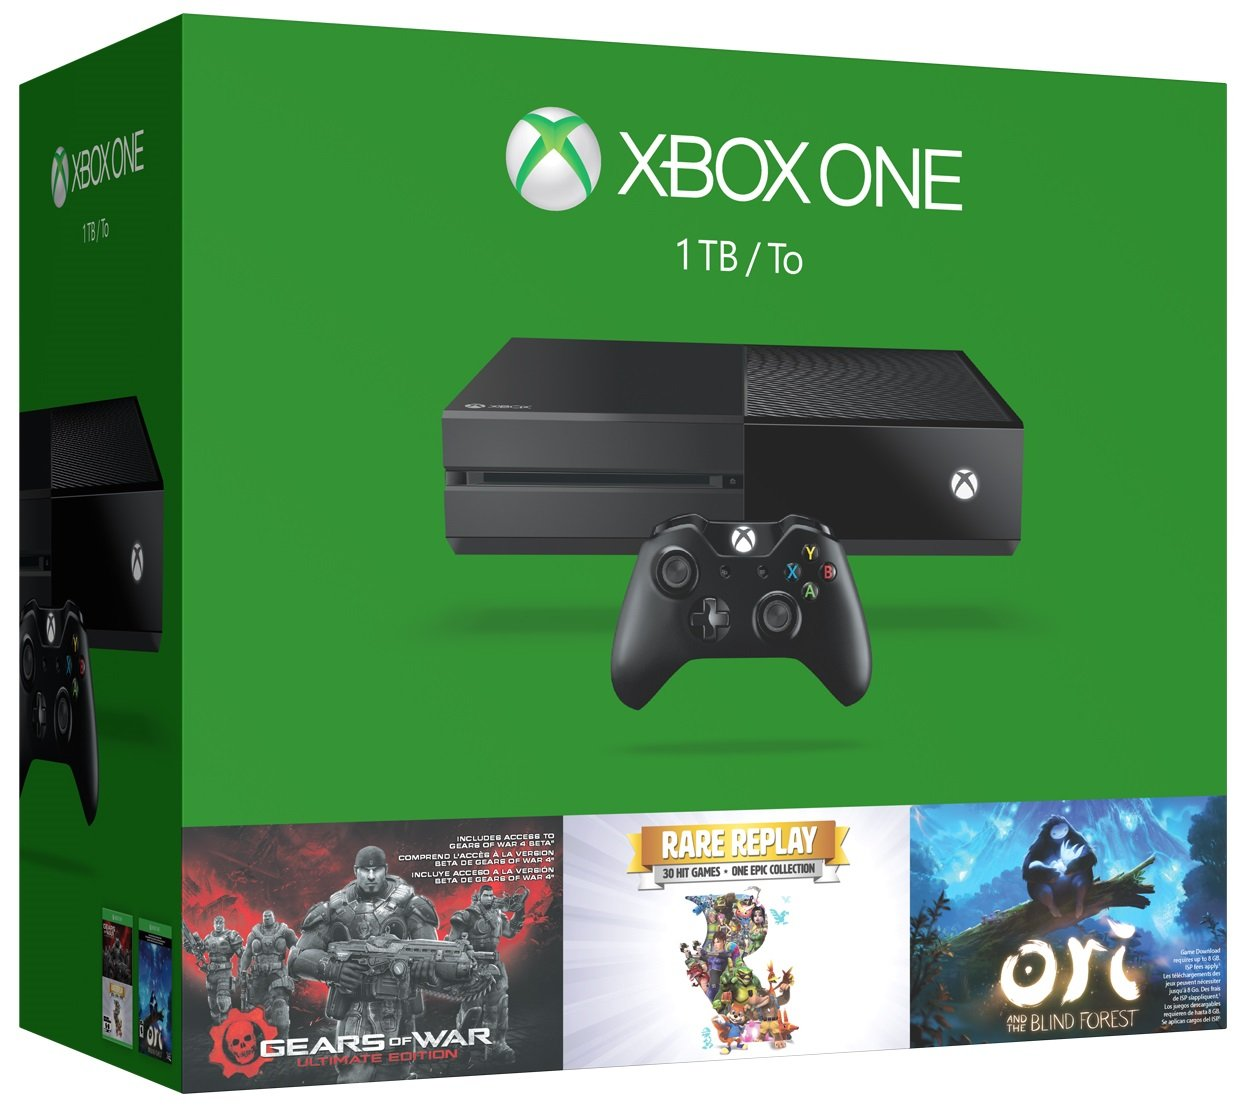 Amazon Com Xbox One 1tb Console 3 Games Holiday Bundle Gears Of War Ultimate Edition Rare Replay Ori And The Blind Forest Video Games